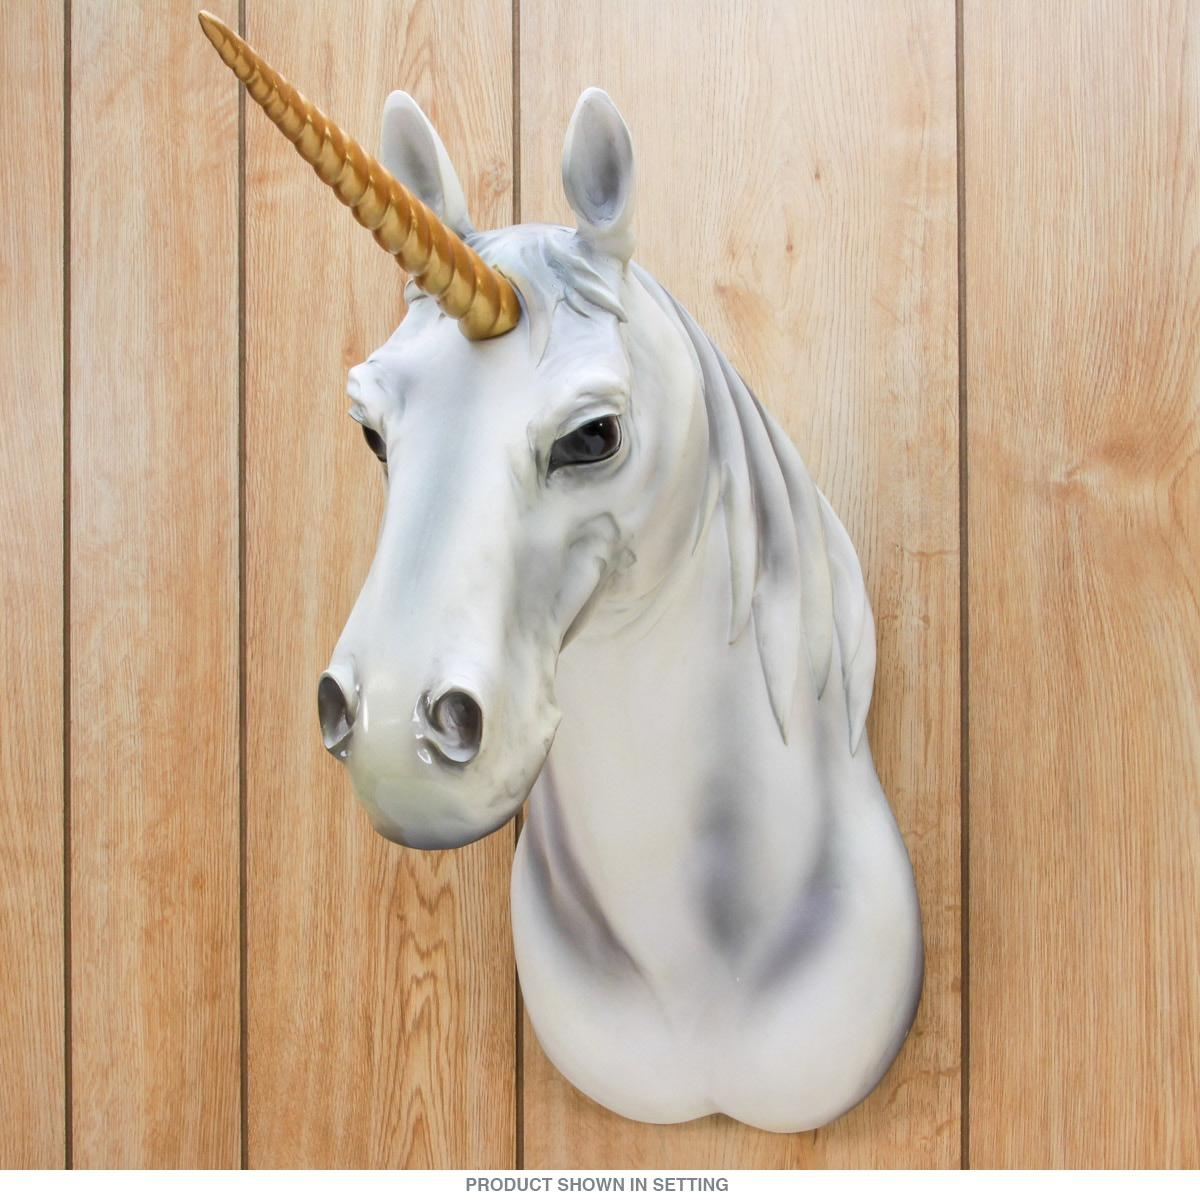 Unicorn Attack Plaque Resin Animal Head | Novelty Home Accents with regard to Resin Animal Heads Wall Art